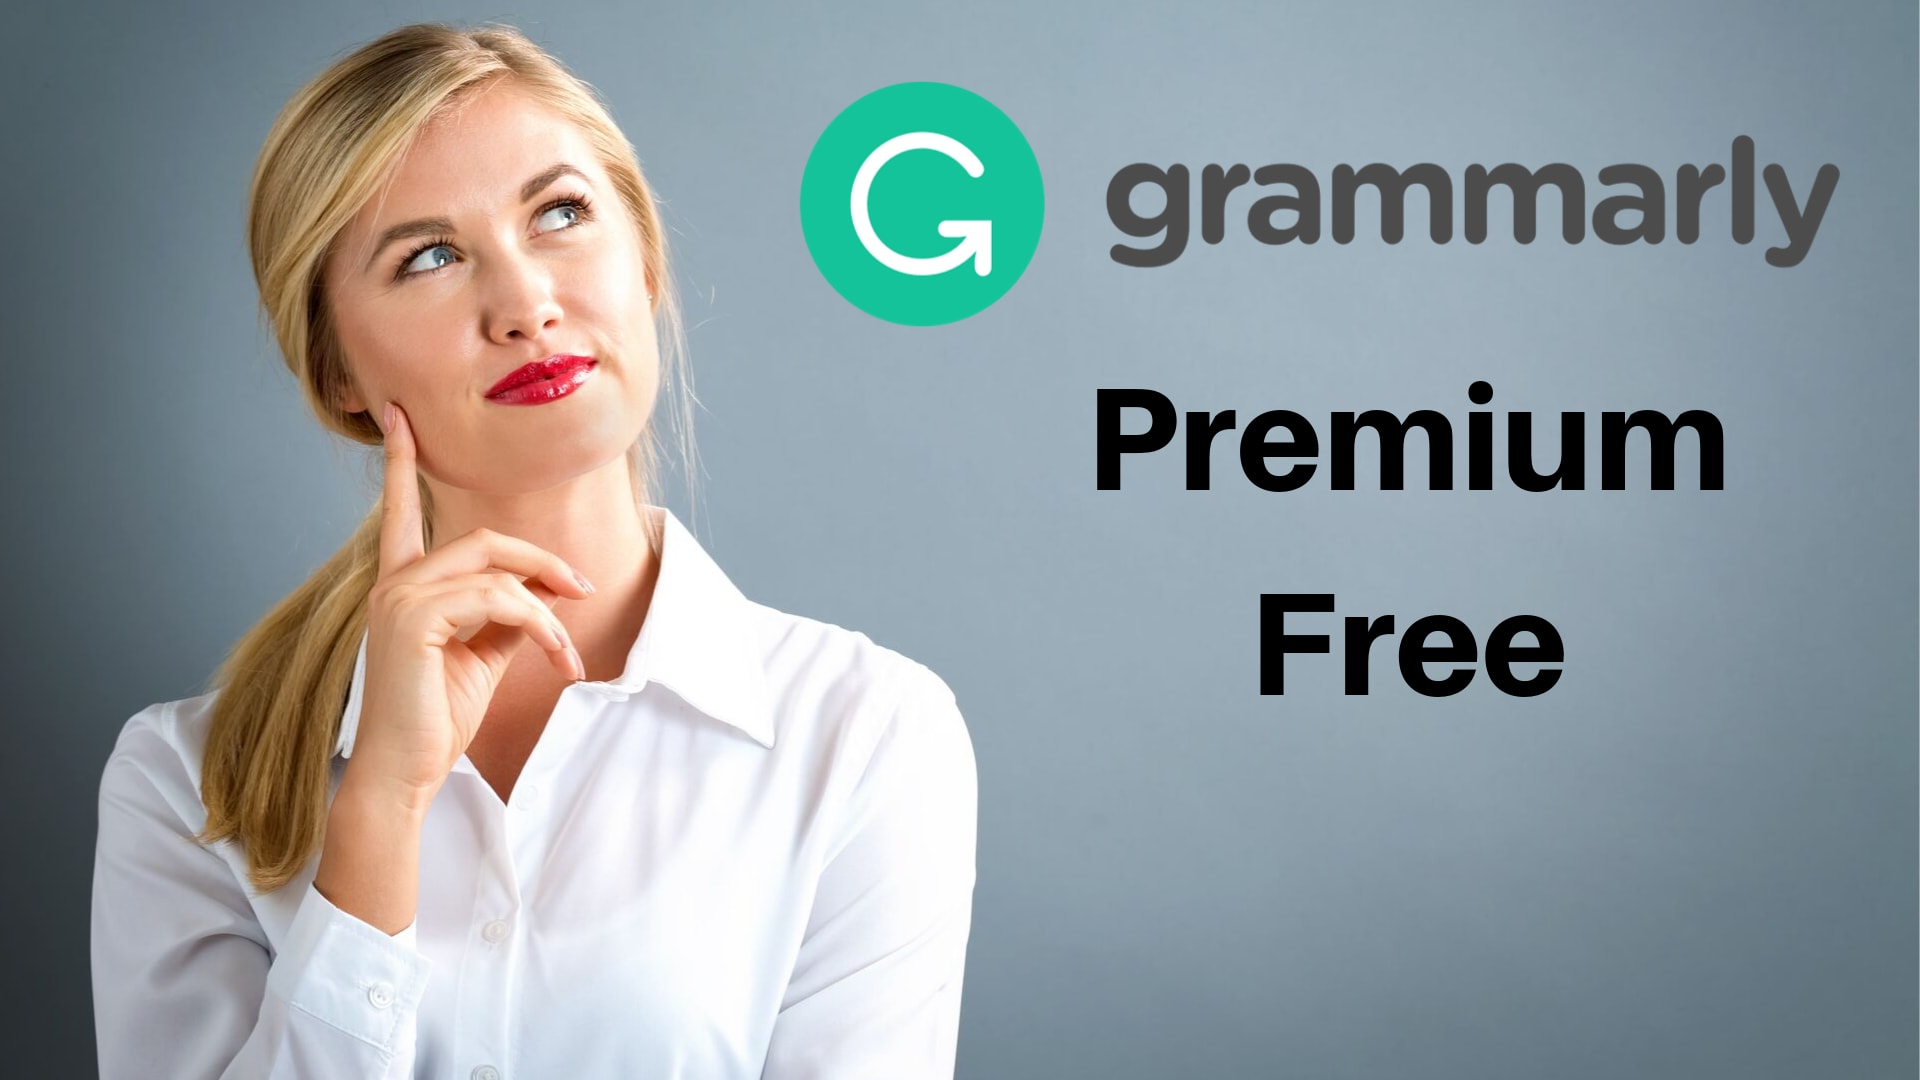 Grammarly Premium Free - Grammarly Premium Free 100% Working Method 2020